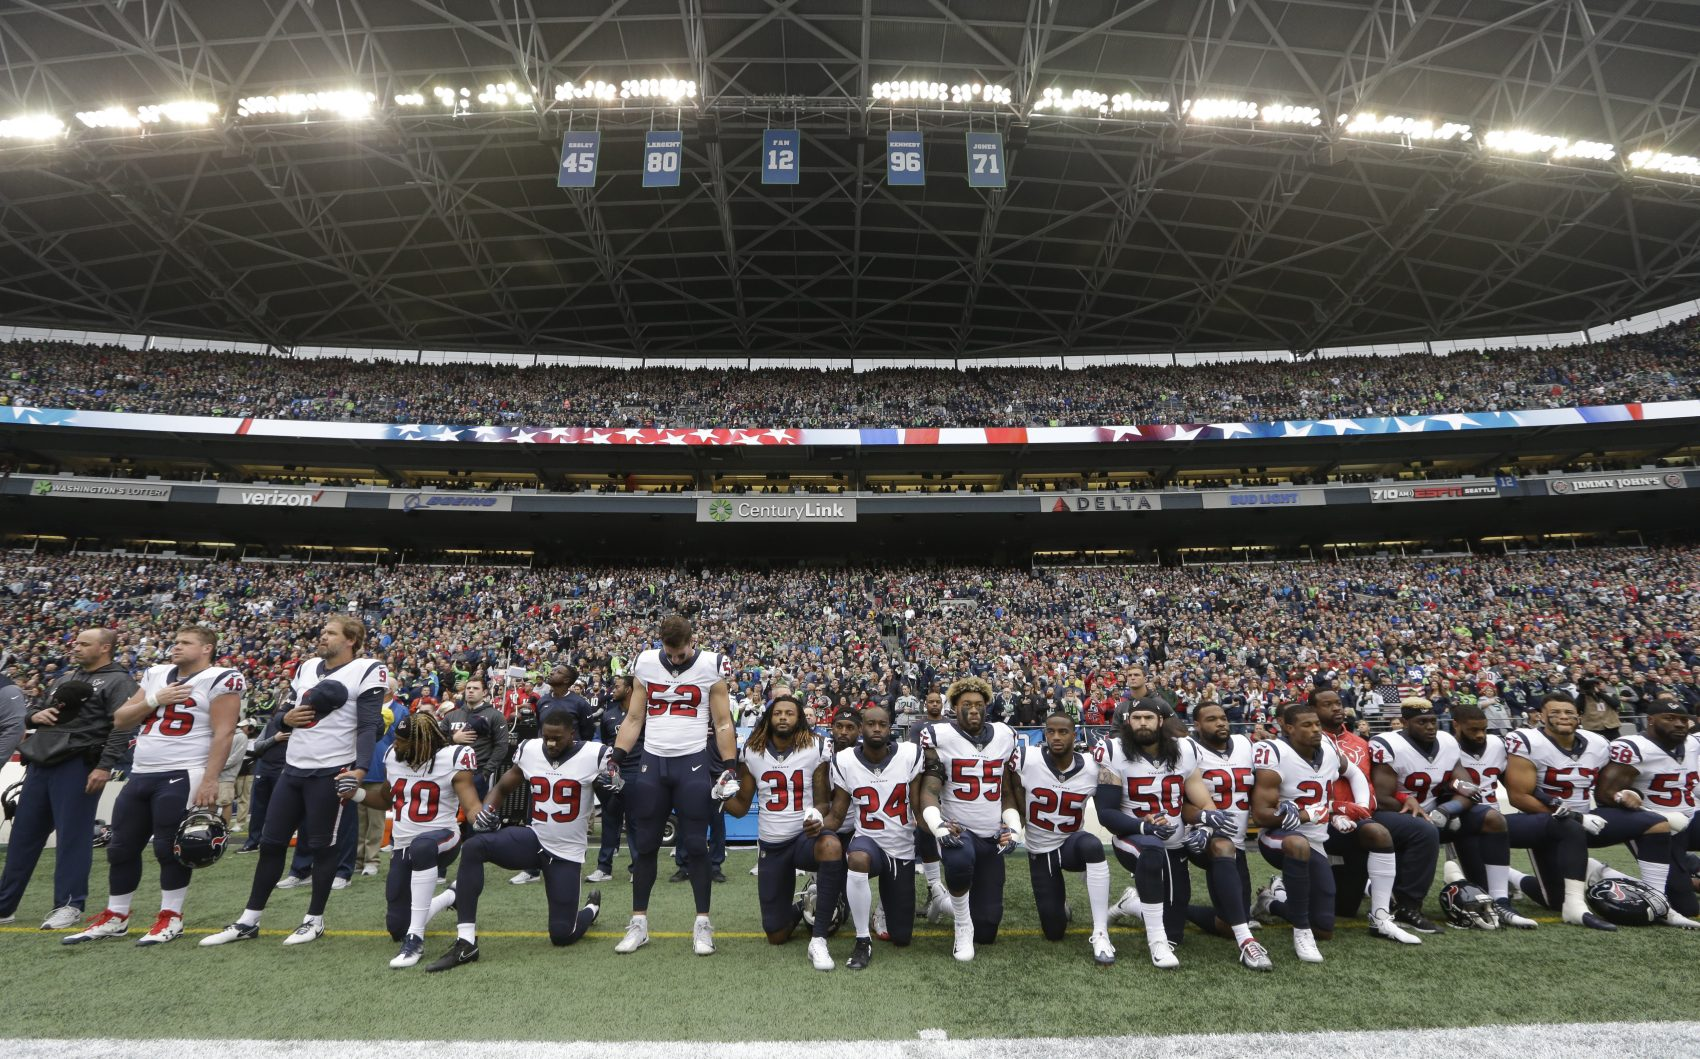 """In this Oct. 29, 2017, file photo, Houston Texans players kneel and stand during the singing of the national anthem before an NFL football game against the Seattle Seahawks, in Seattle. NFL owners have approved a new policy aimed at addressing the firestorm over national anthem protests, permitting players to stay in the locker room during the """"The Star-Spangled Banner"""" but requiring them to stand if they come to the field. The decision was announced Wednesday, May 23, 2018, by NFL Commissioner Roger Goodell during the league's spring meeting in Atlanta. (Elaine Thompson/AP)"""